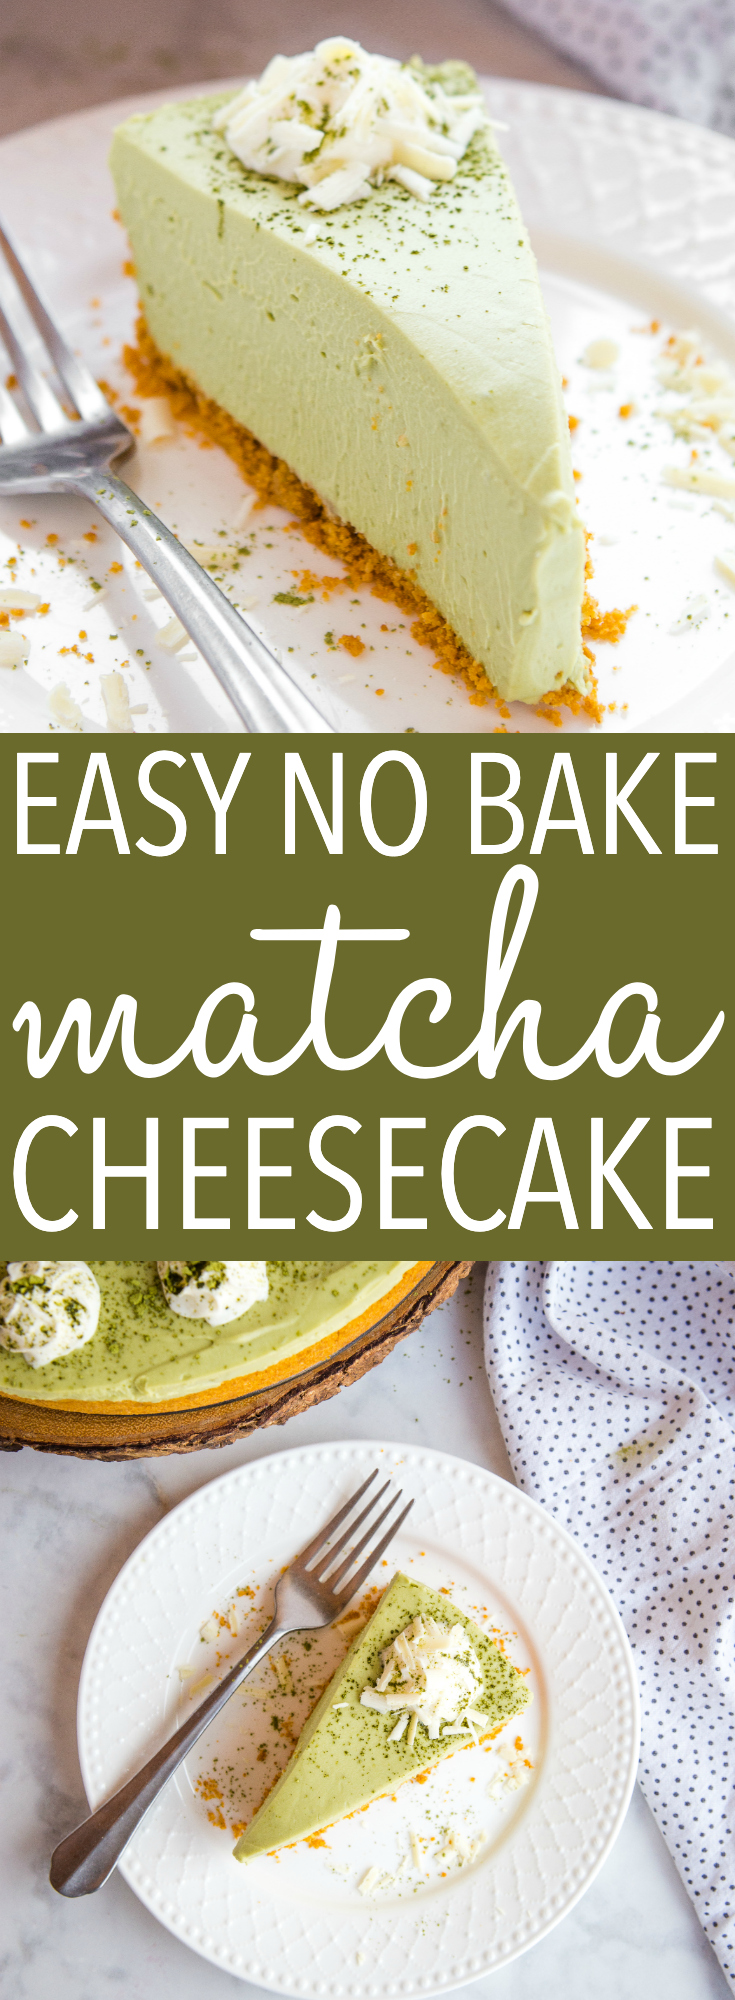 This Easy No Bake Matcha Cheesecake is ultra creamy and smooth with the most delicious green tea flavour! Basic ingredients and gelatine-free! Recipe from thebusybaker.ca! #matchacheesecake #nobakecheesecake #greenteacheesecake #easycheesecake #nobakedessert via @busybakerblog